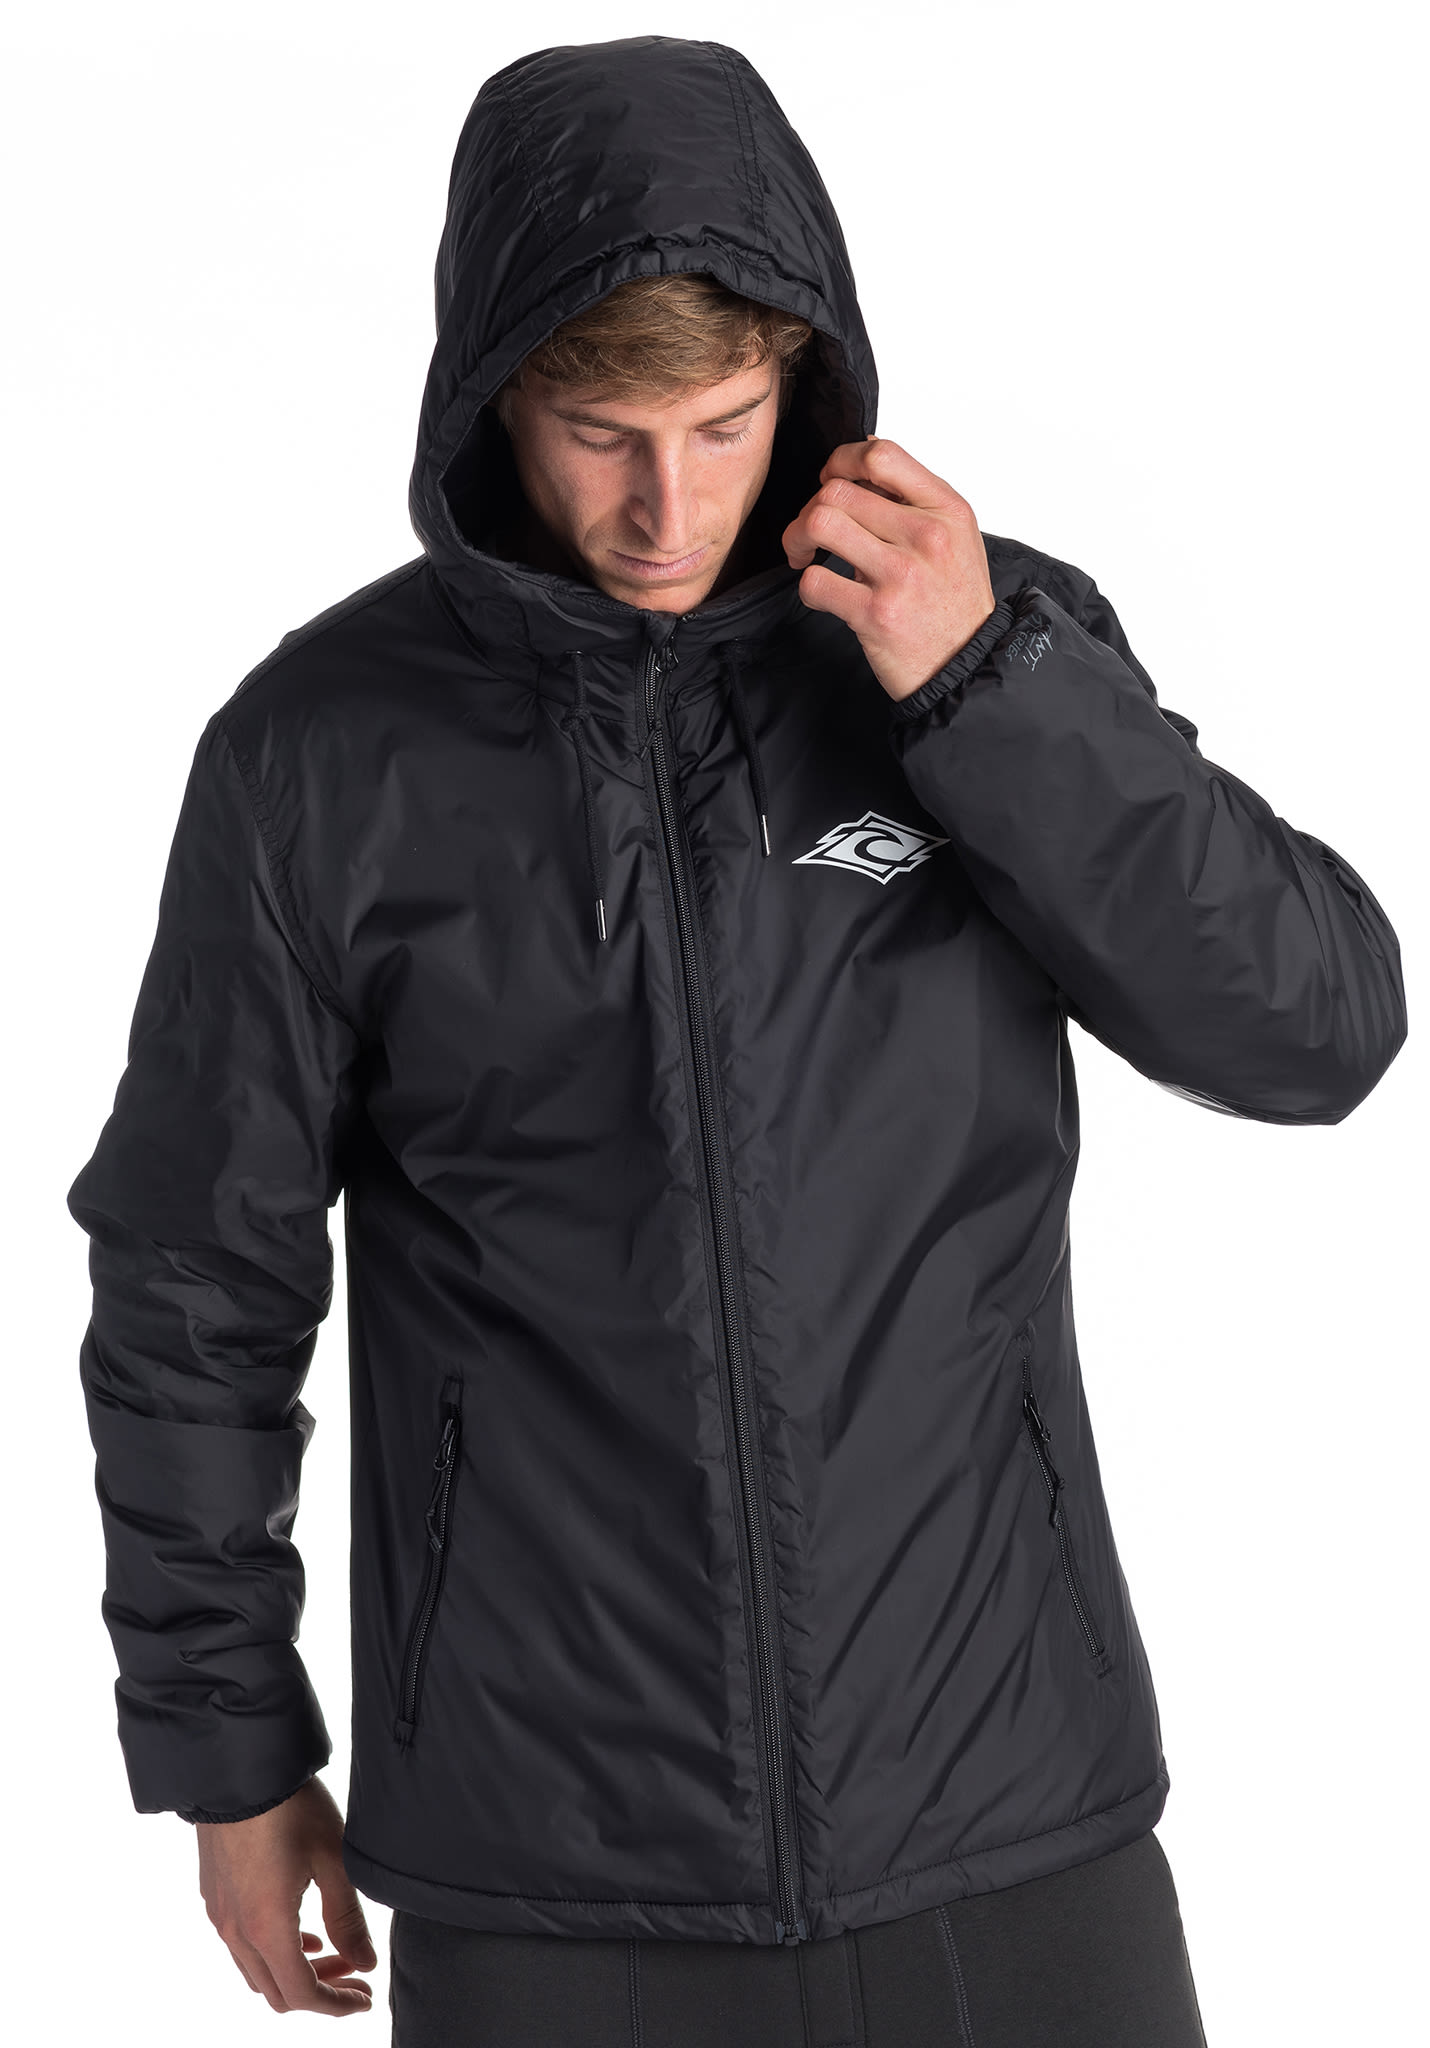 Rip Curl Sea Troop Insulated Jacket for Men Black